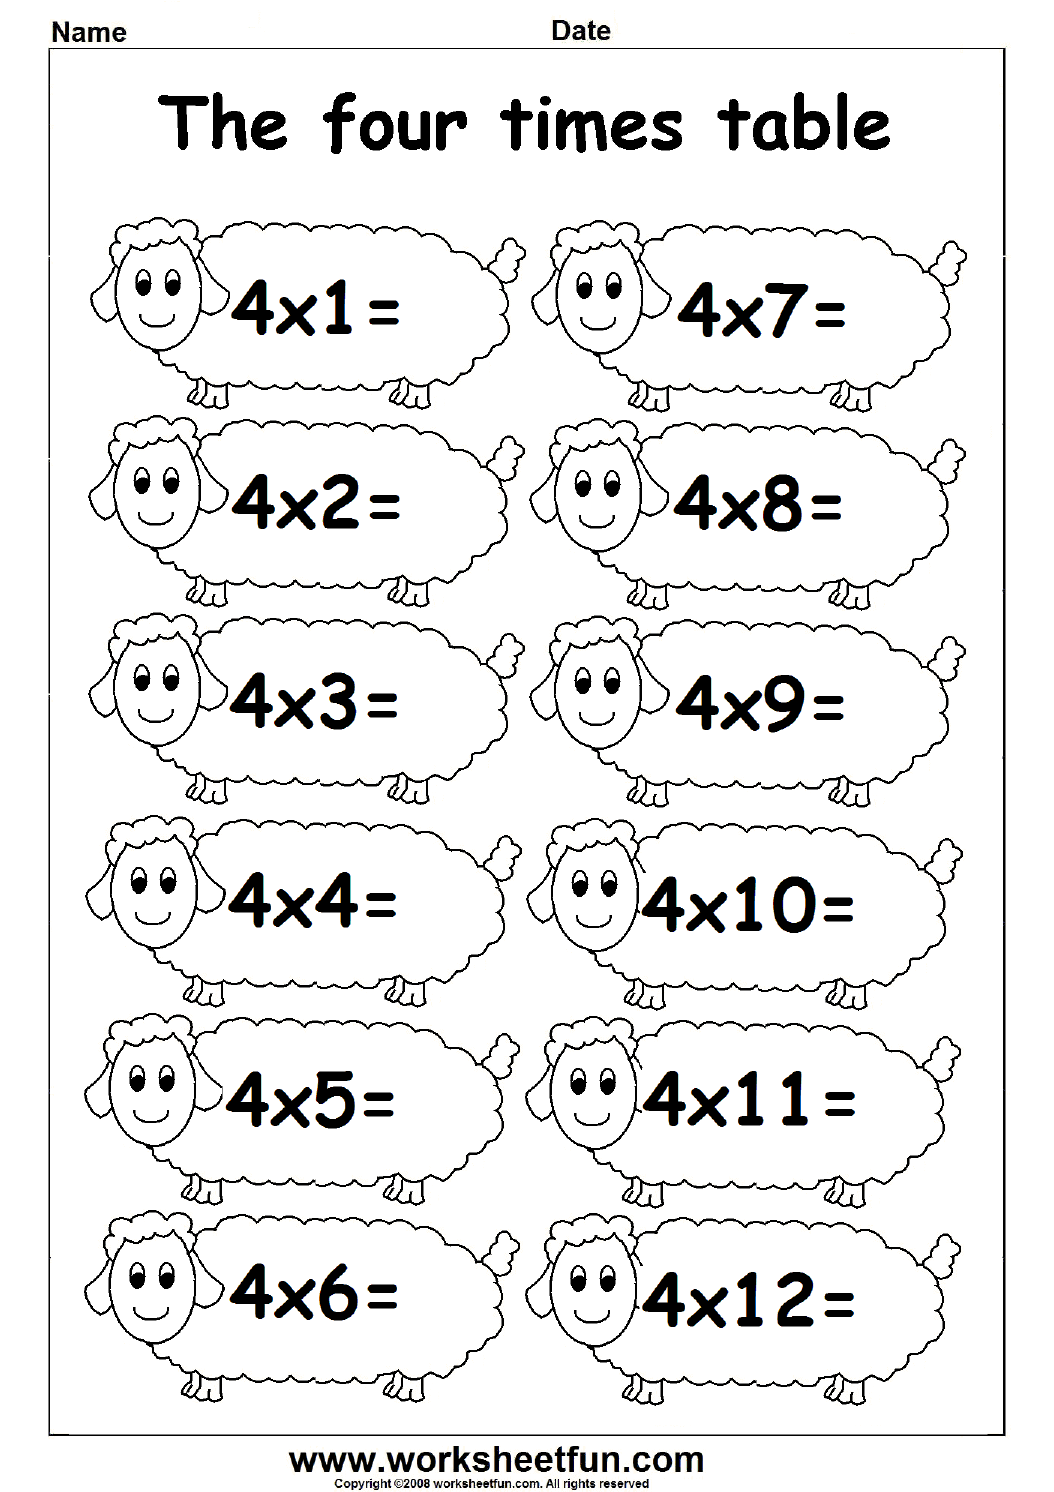 Multiplication Times Tables Worksheets 2 3 Amp 4 Times Tables Three Worksheets Free